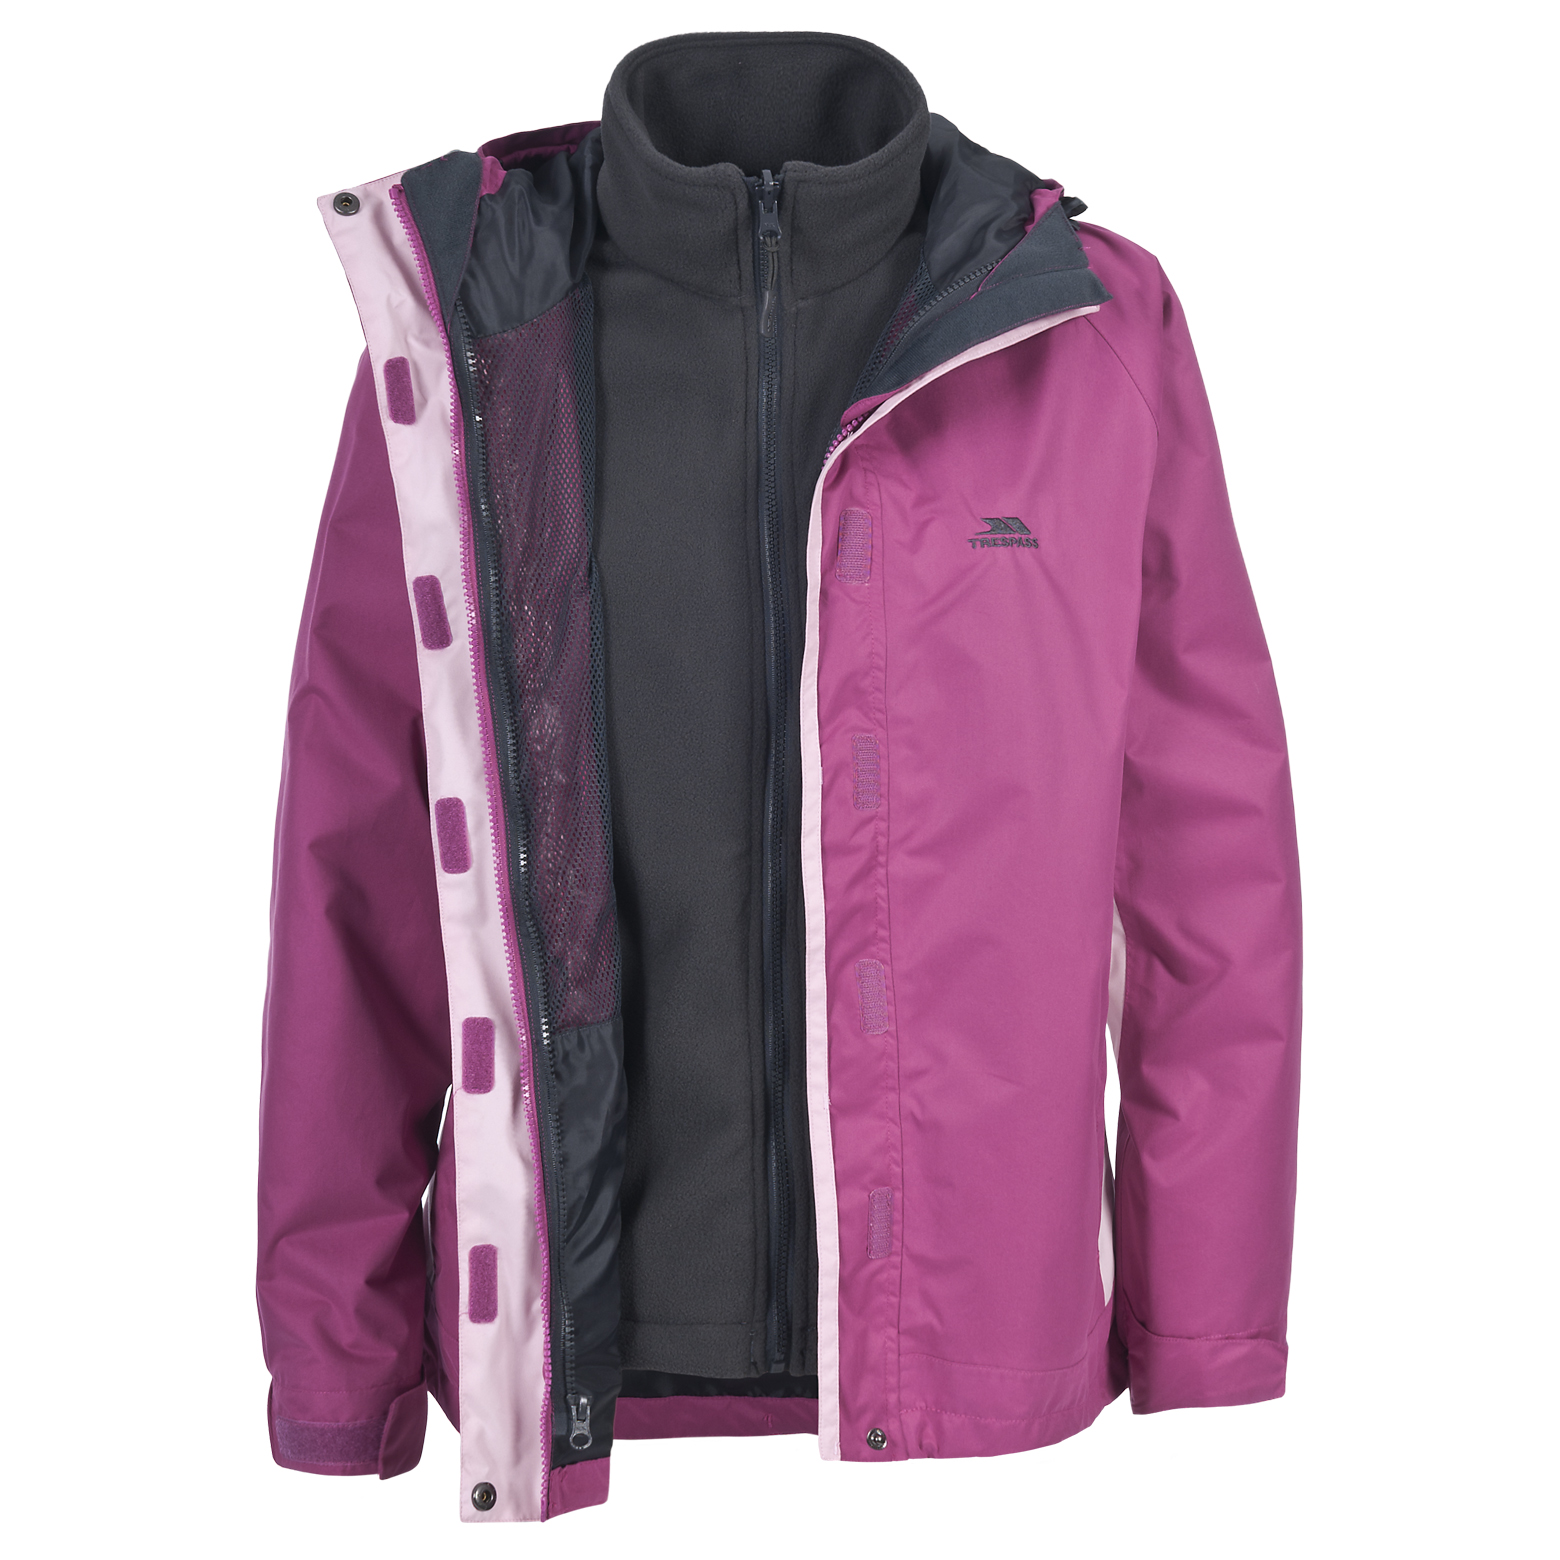 Women's 3 in 1 jackets – invest in one jacket this season